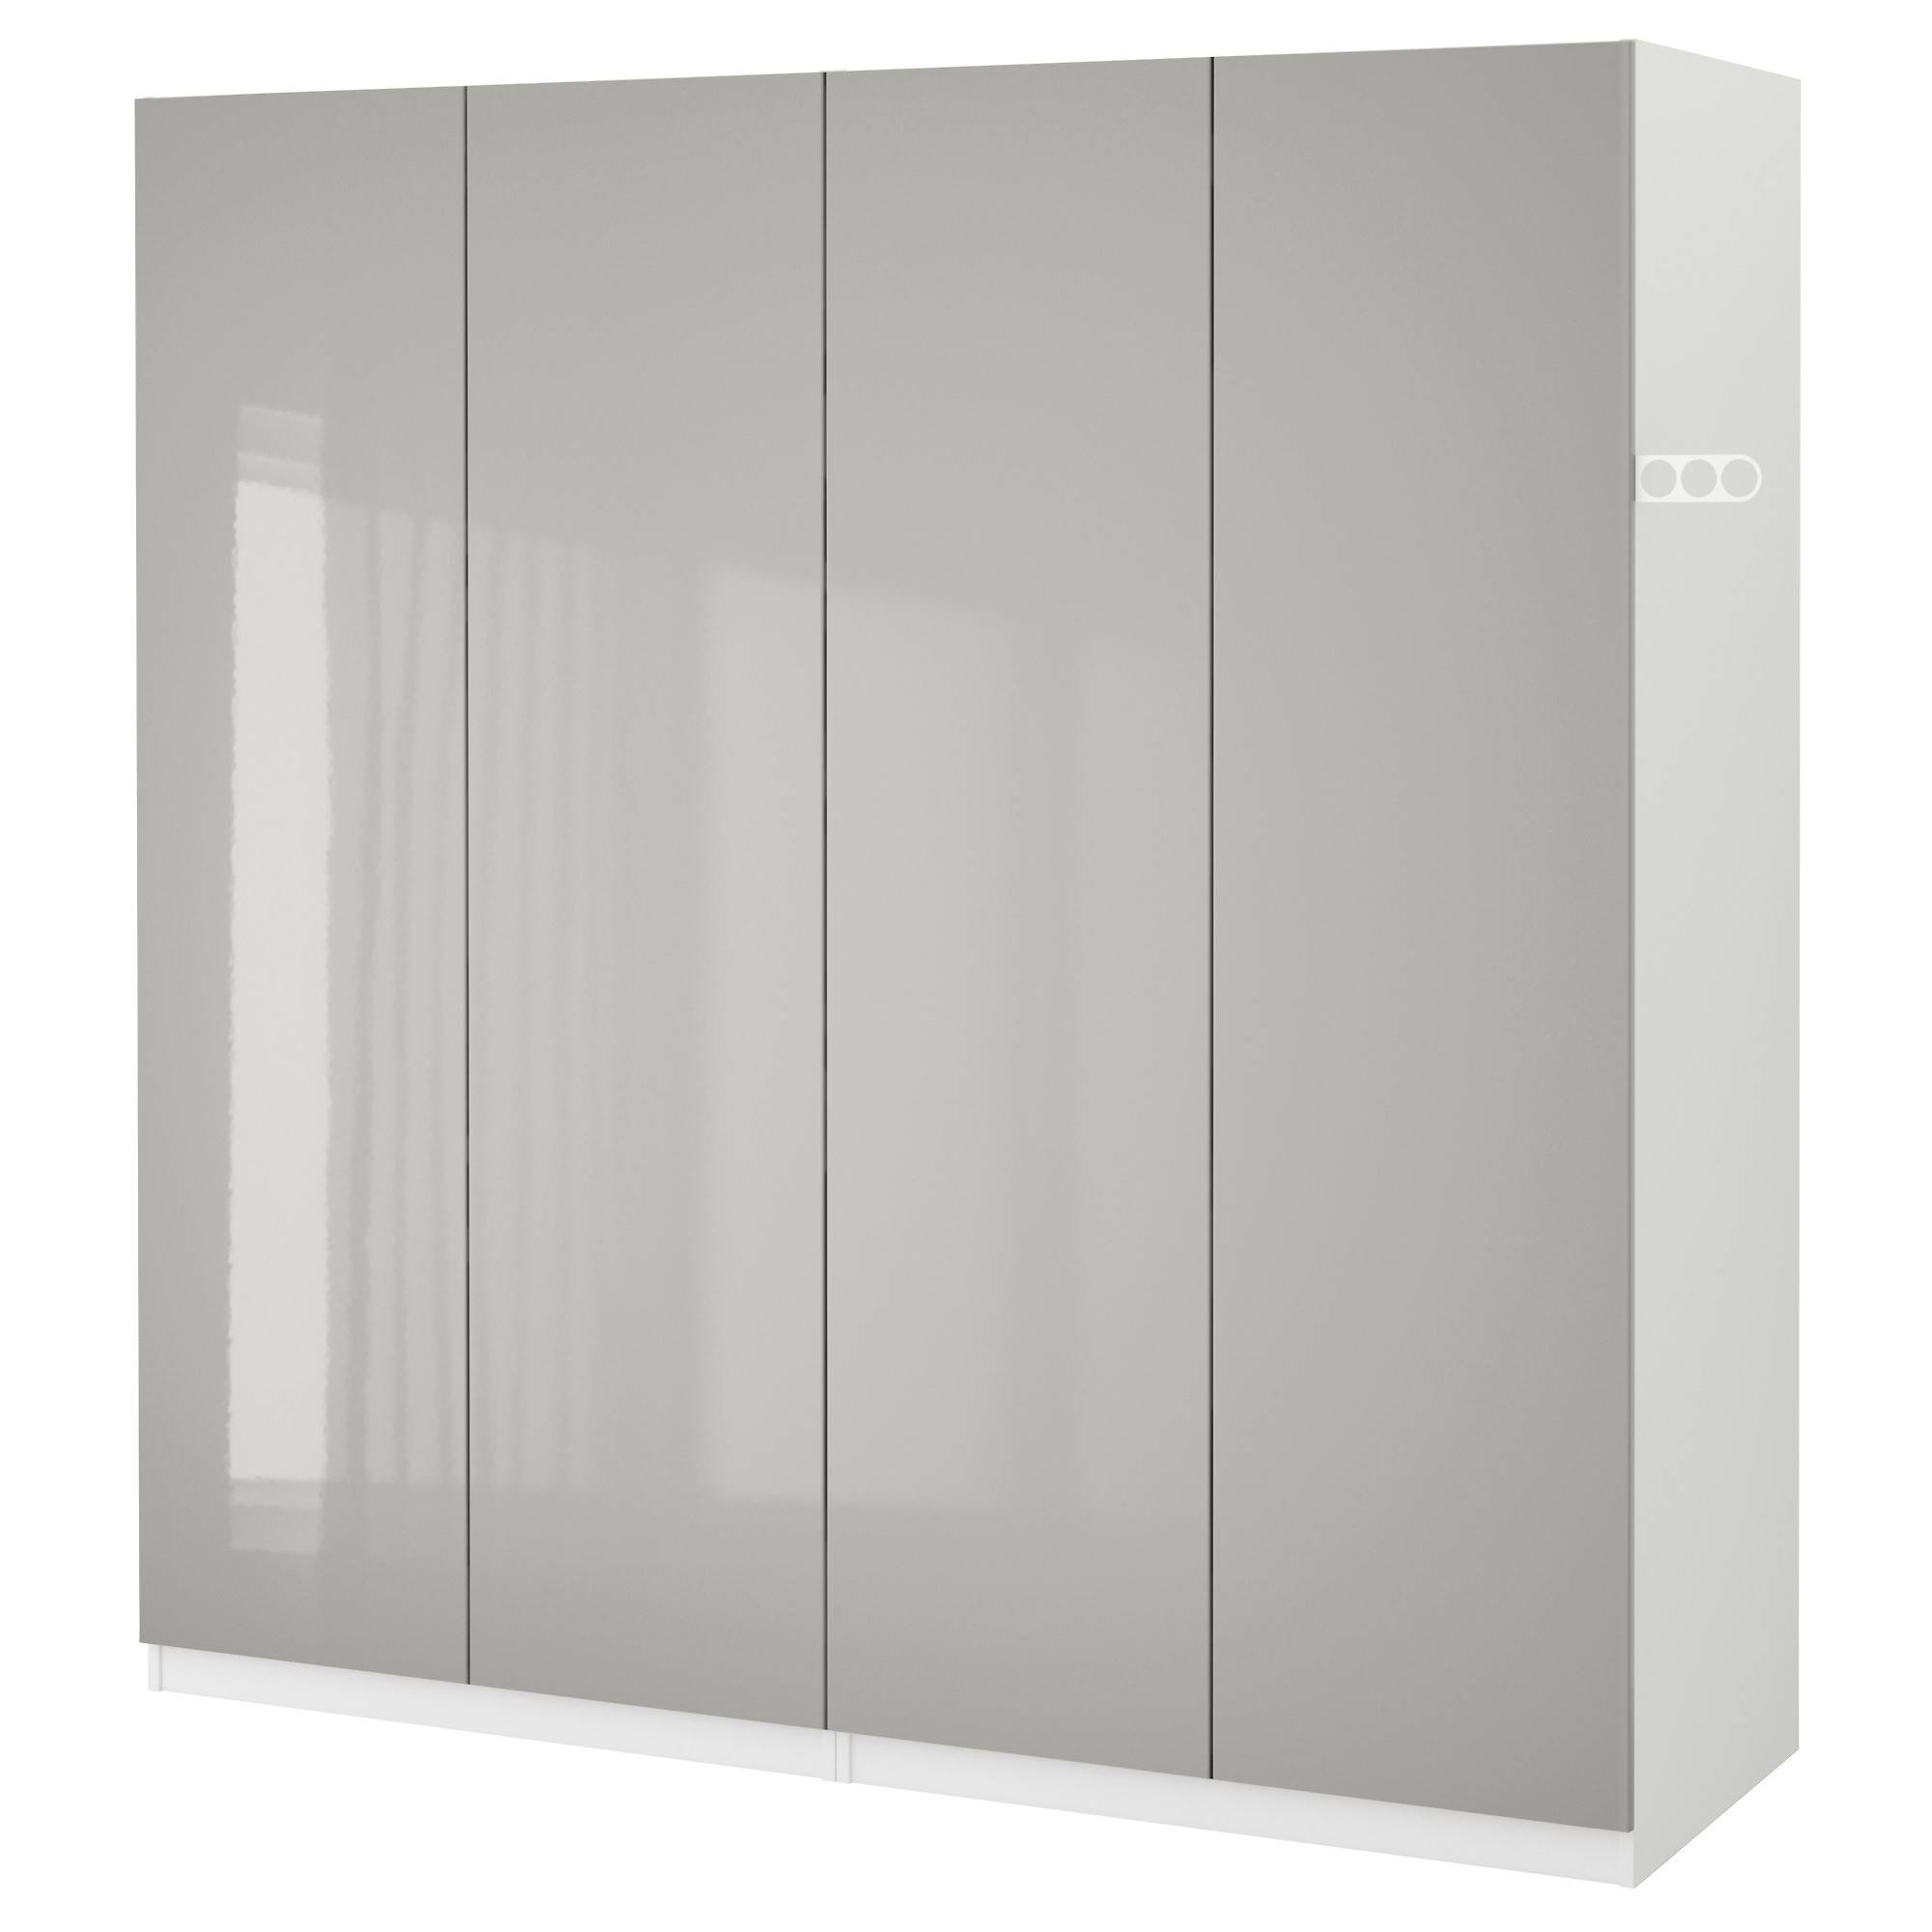 pok wardrobe grey furniture products in arthauss walk corner po